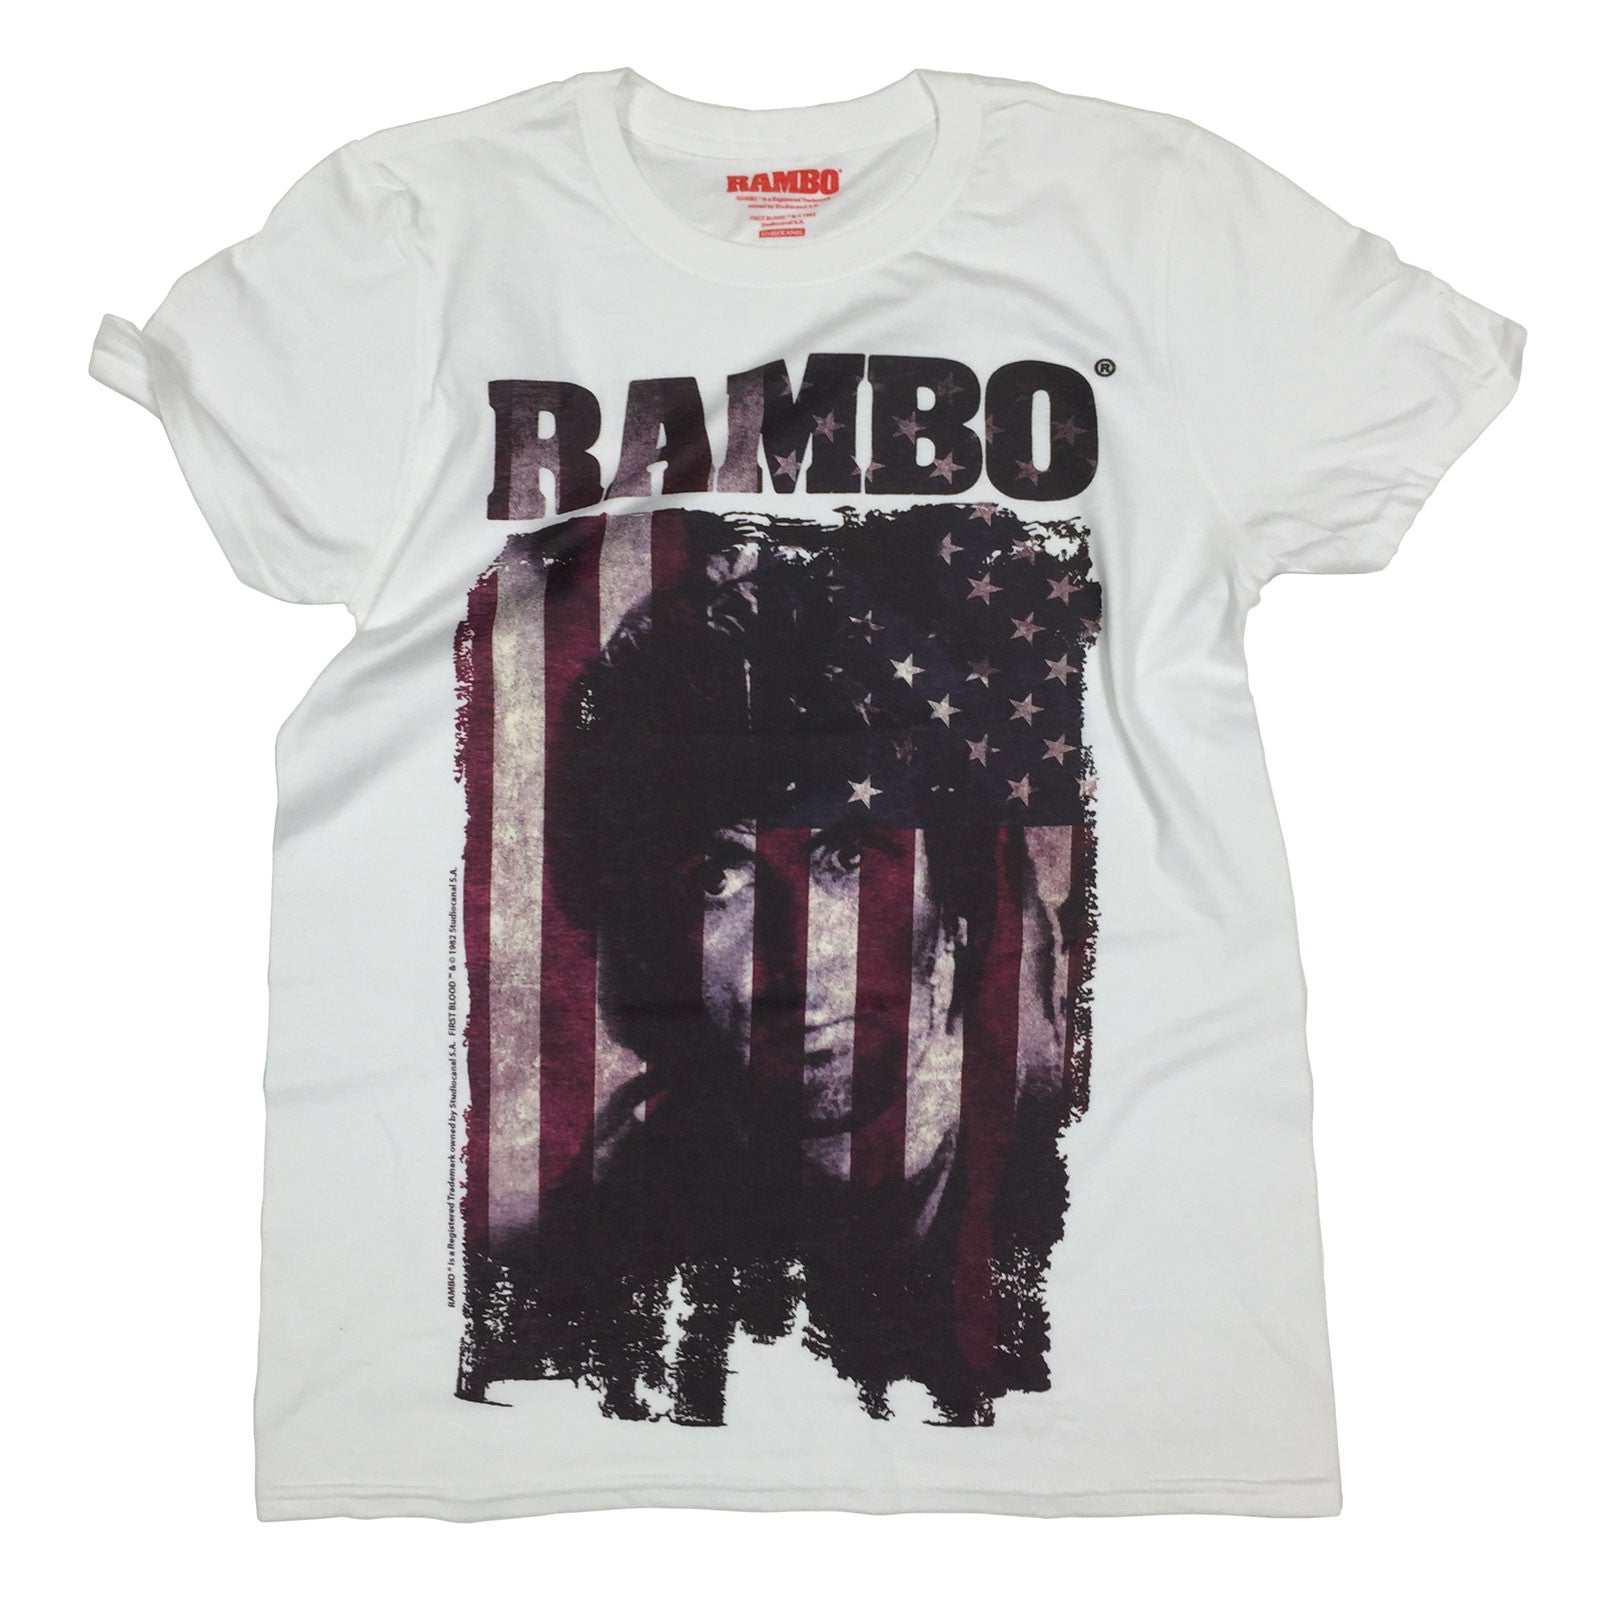 2bcffcc4 Buy Rambo Sylvester Stallone - Official T-SHIRT at 123t T-Shirts ...